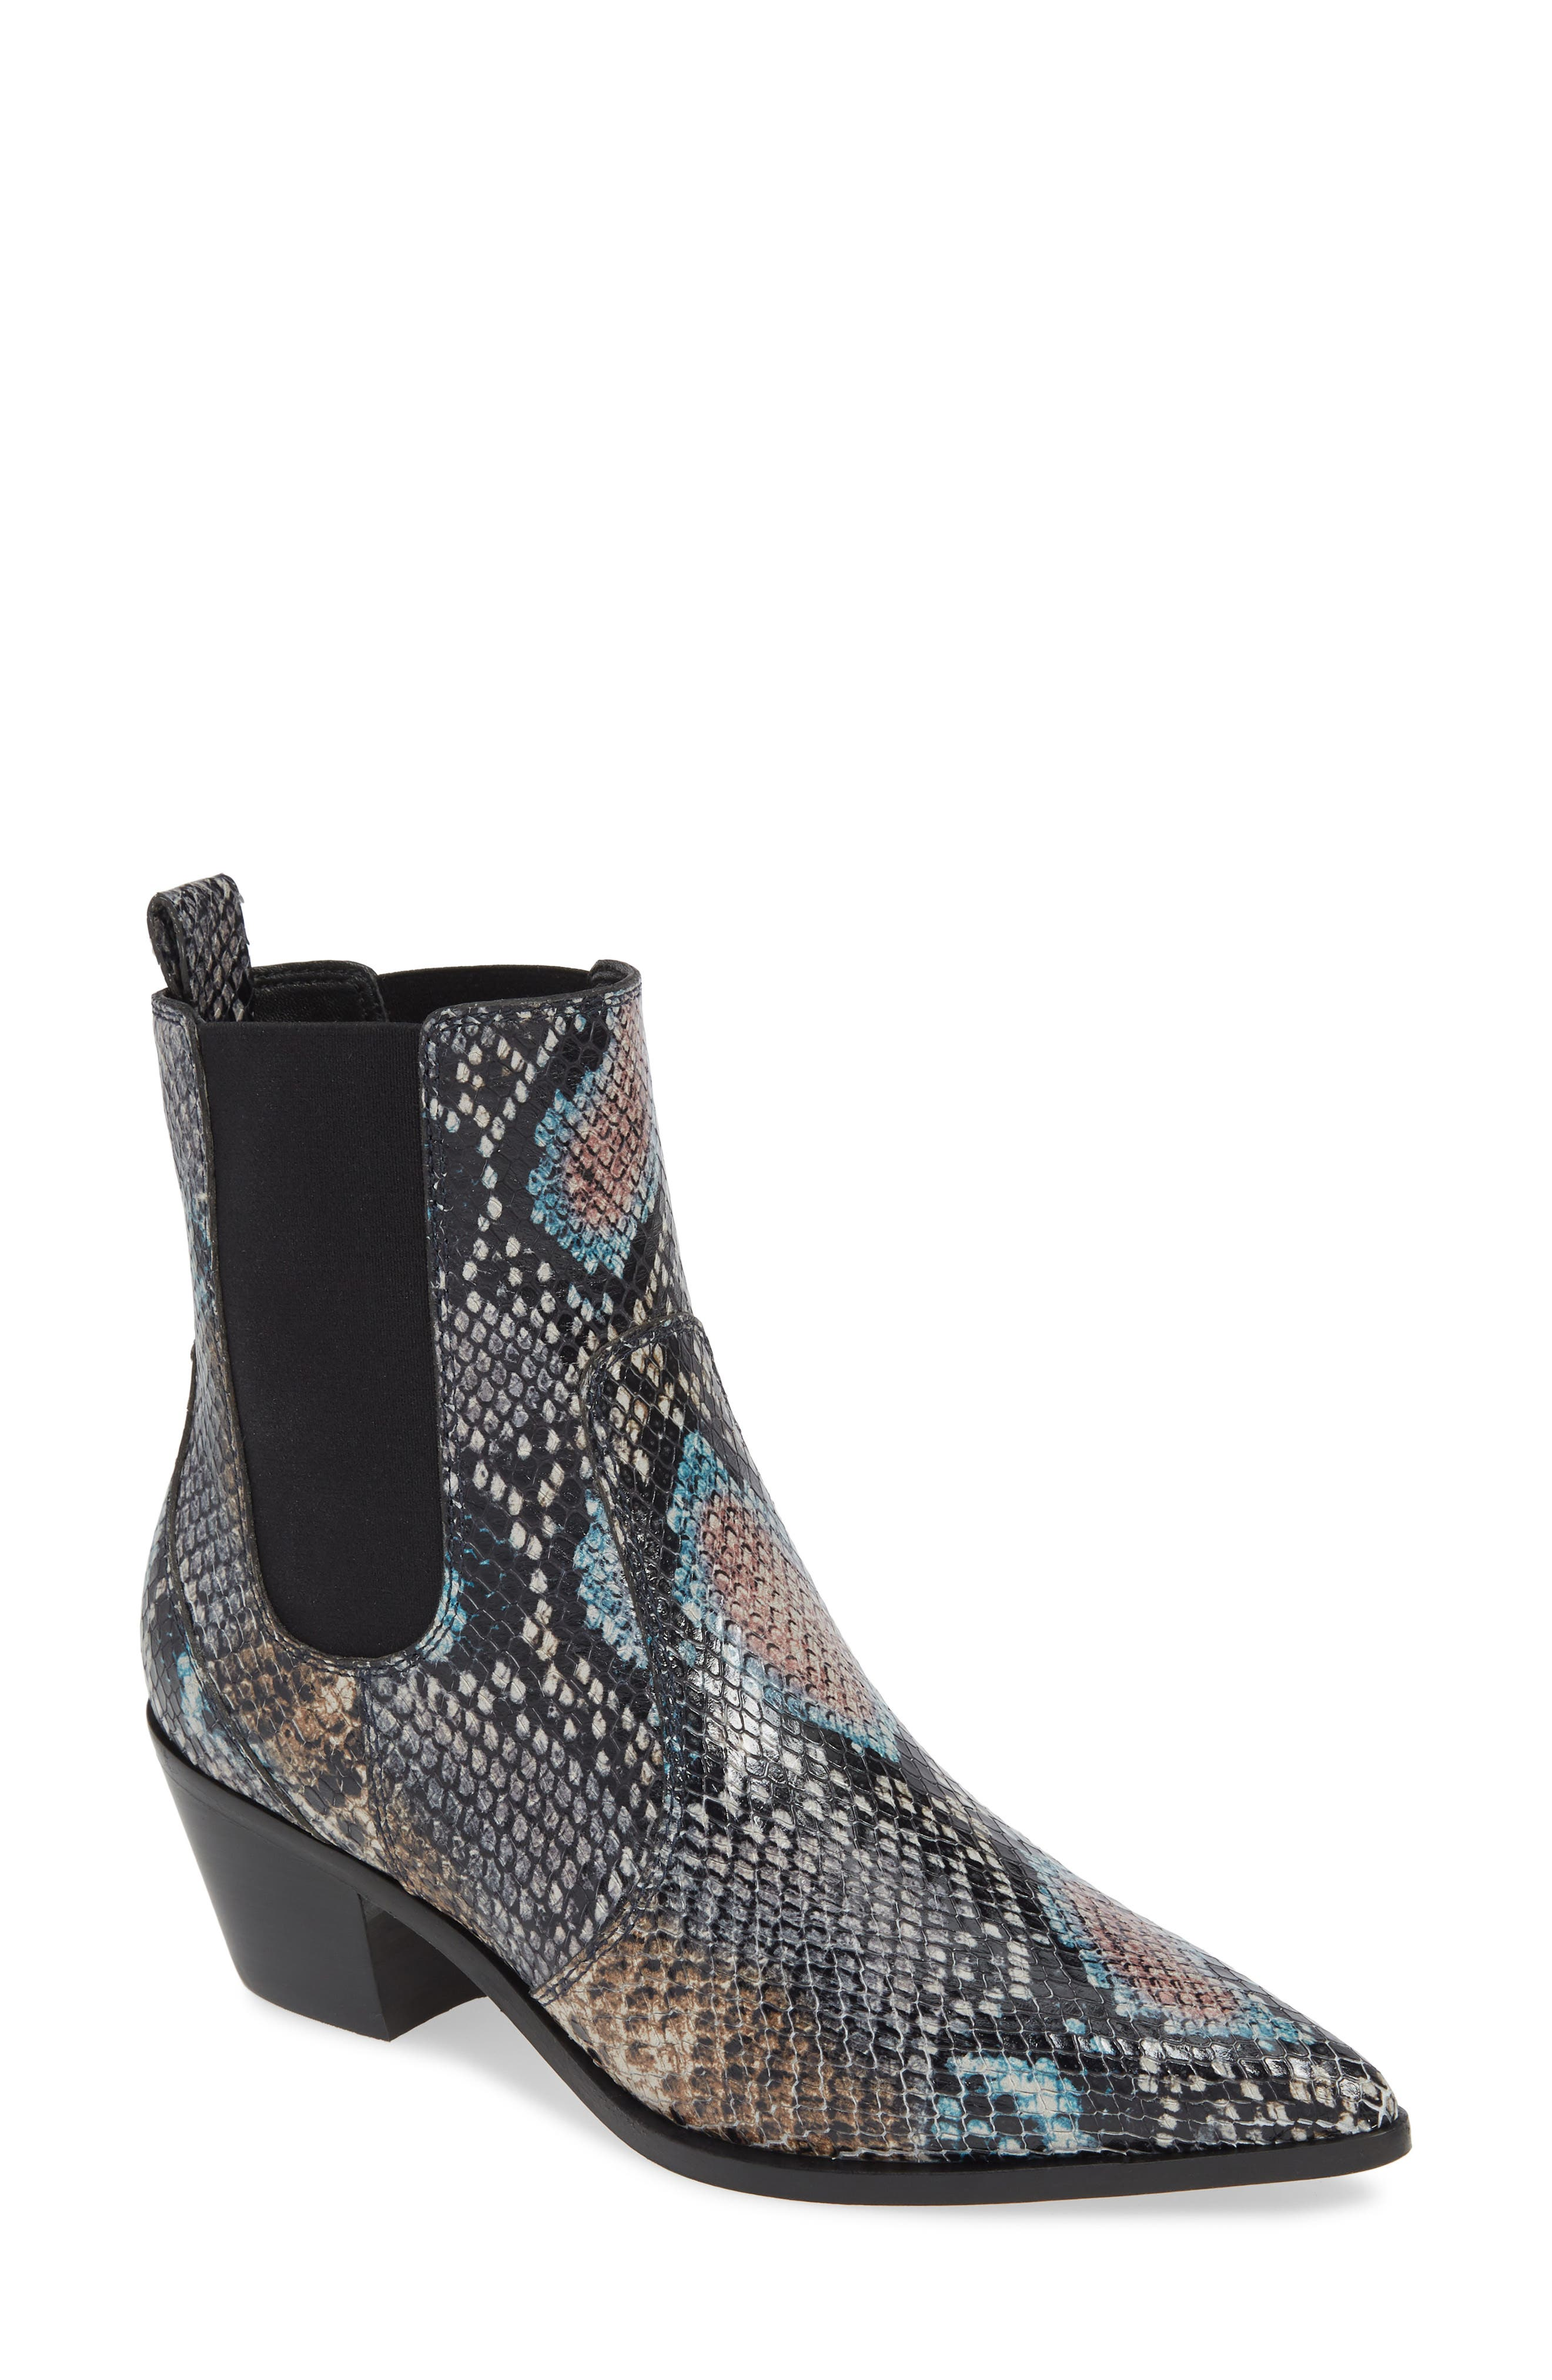 7441efdae03 Women's PAIGE Shoes | Nordstrom